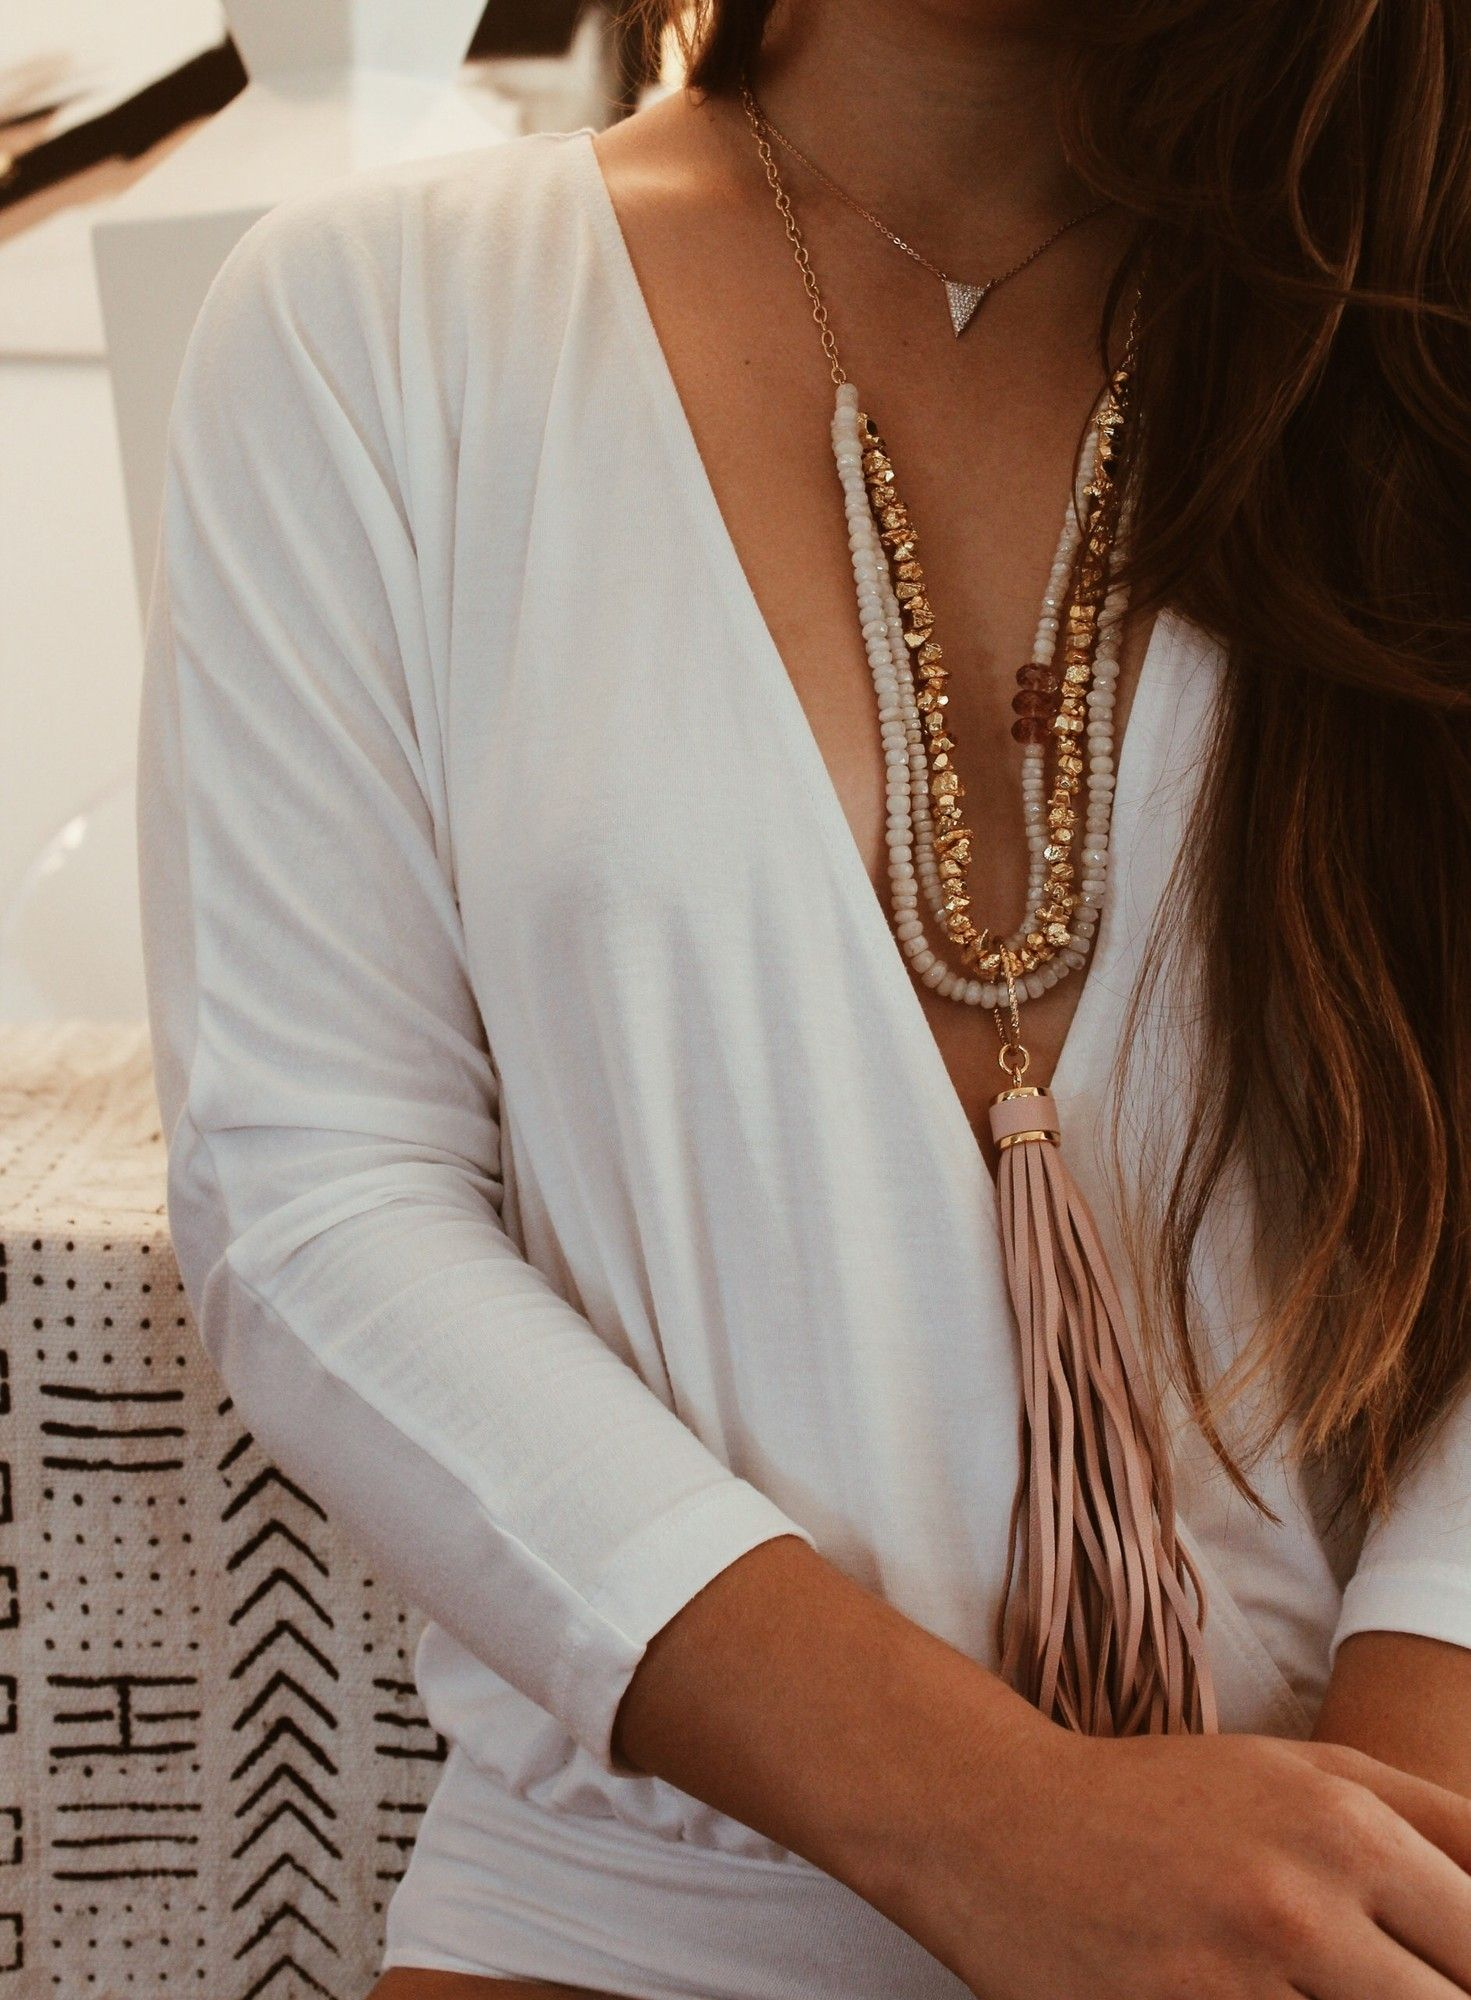 When in doubt, sparkle it out! Layered to perfection in the Nicky necklace (w removable tassel) ✨#charmesilkiner #linkinbio #sparkle #aotd #prettyinpink #golden